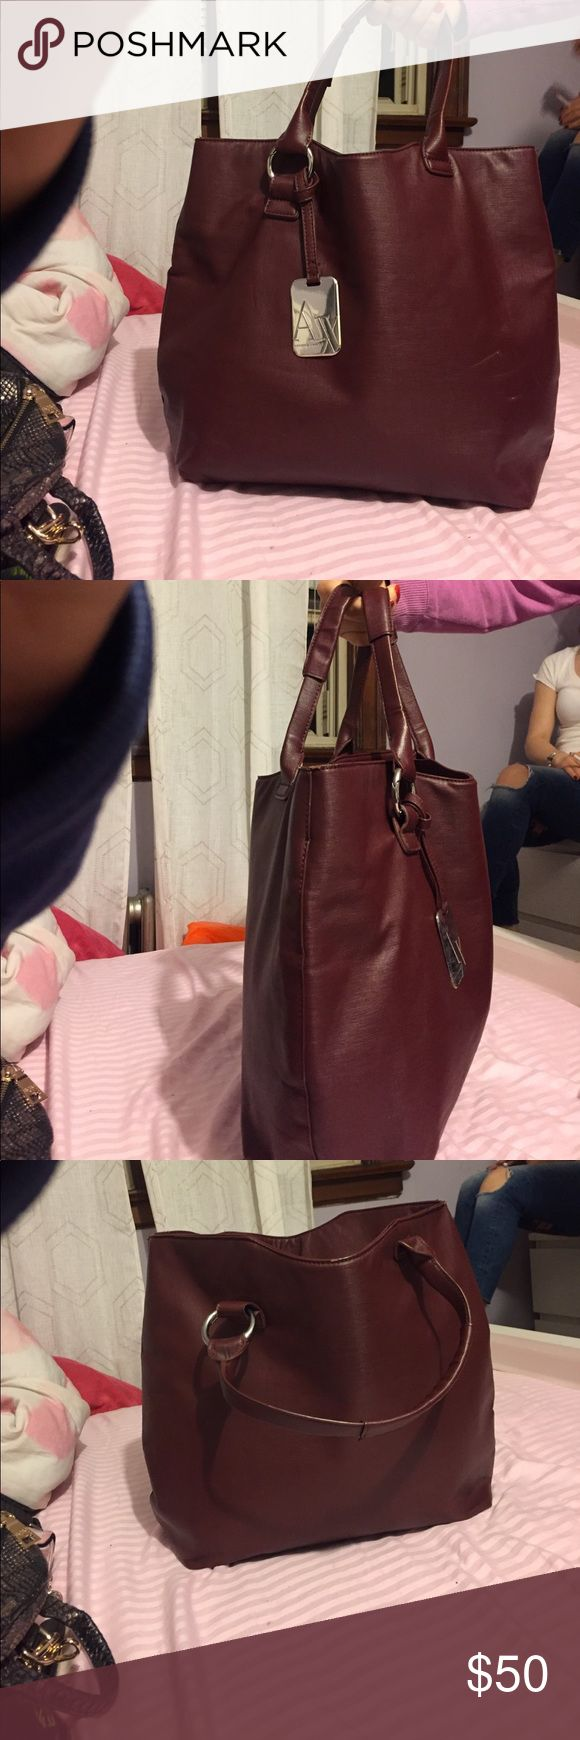 Armani exchange tote. Great bag only worn couple times. A/X Armani Exchange Bags Totes